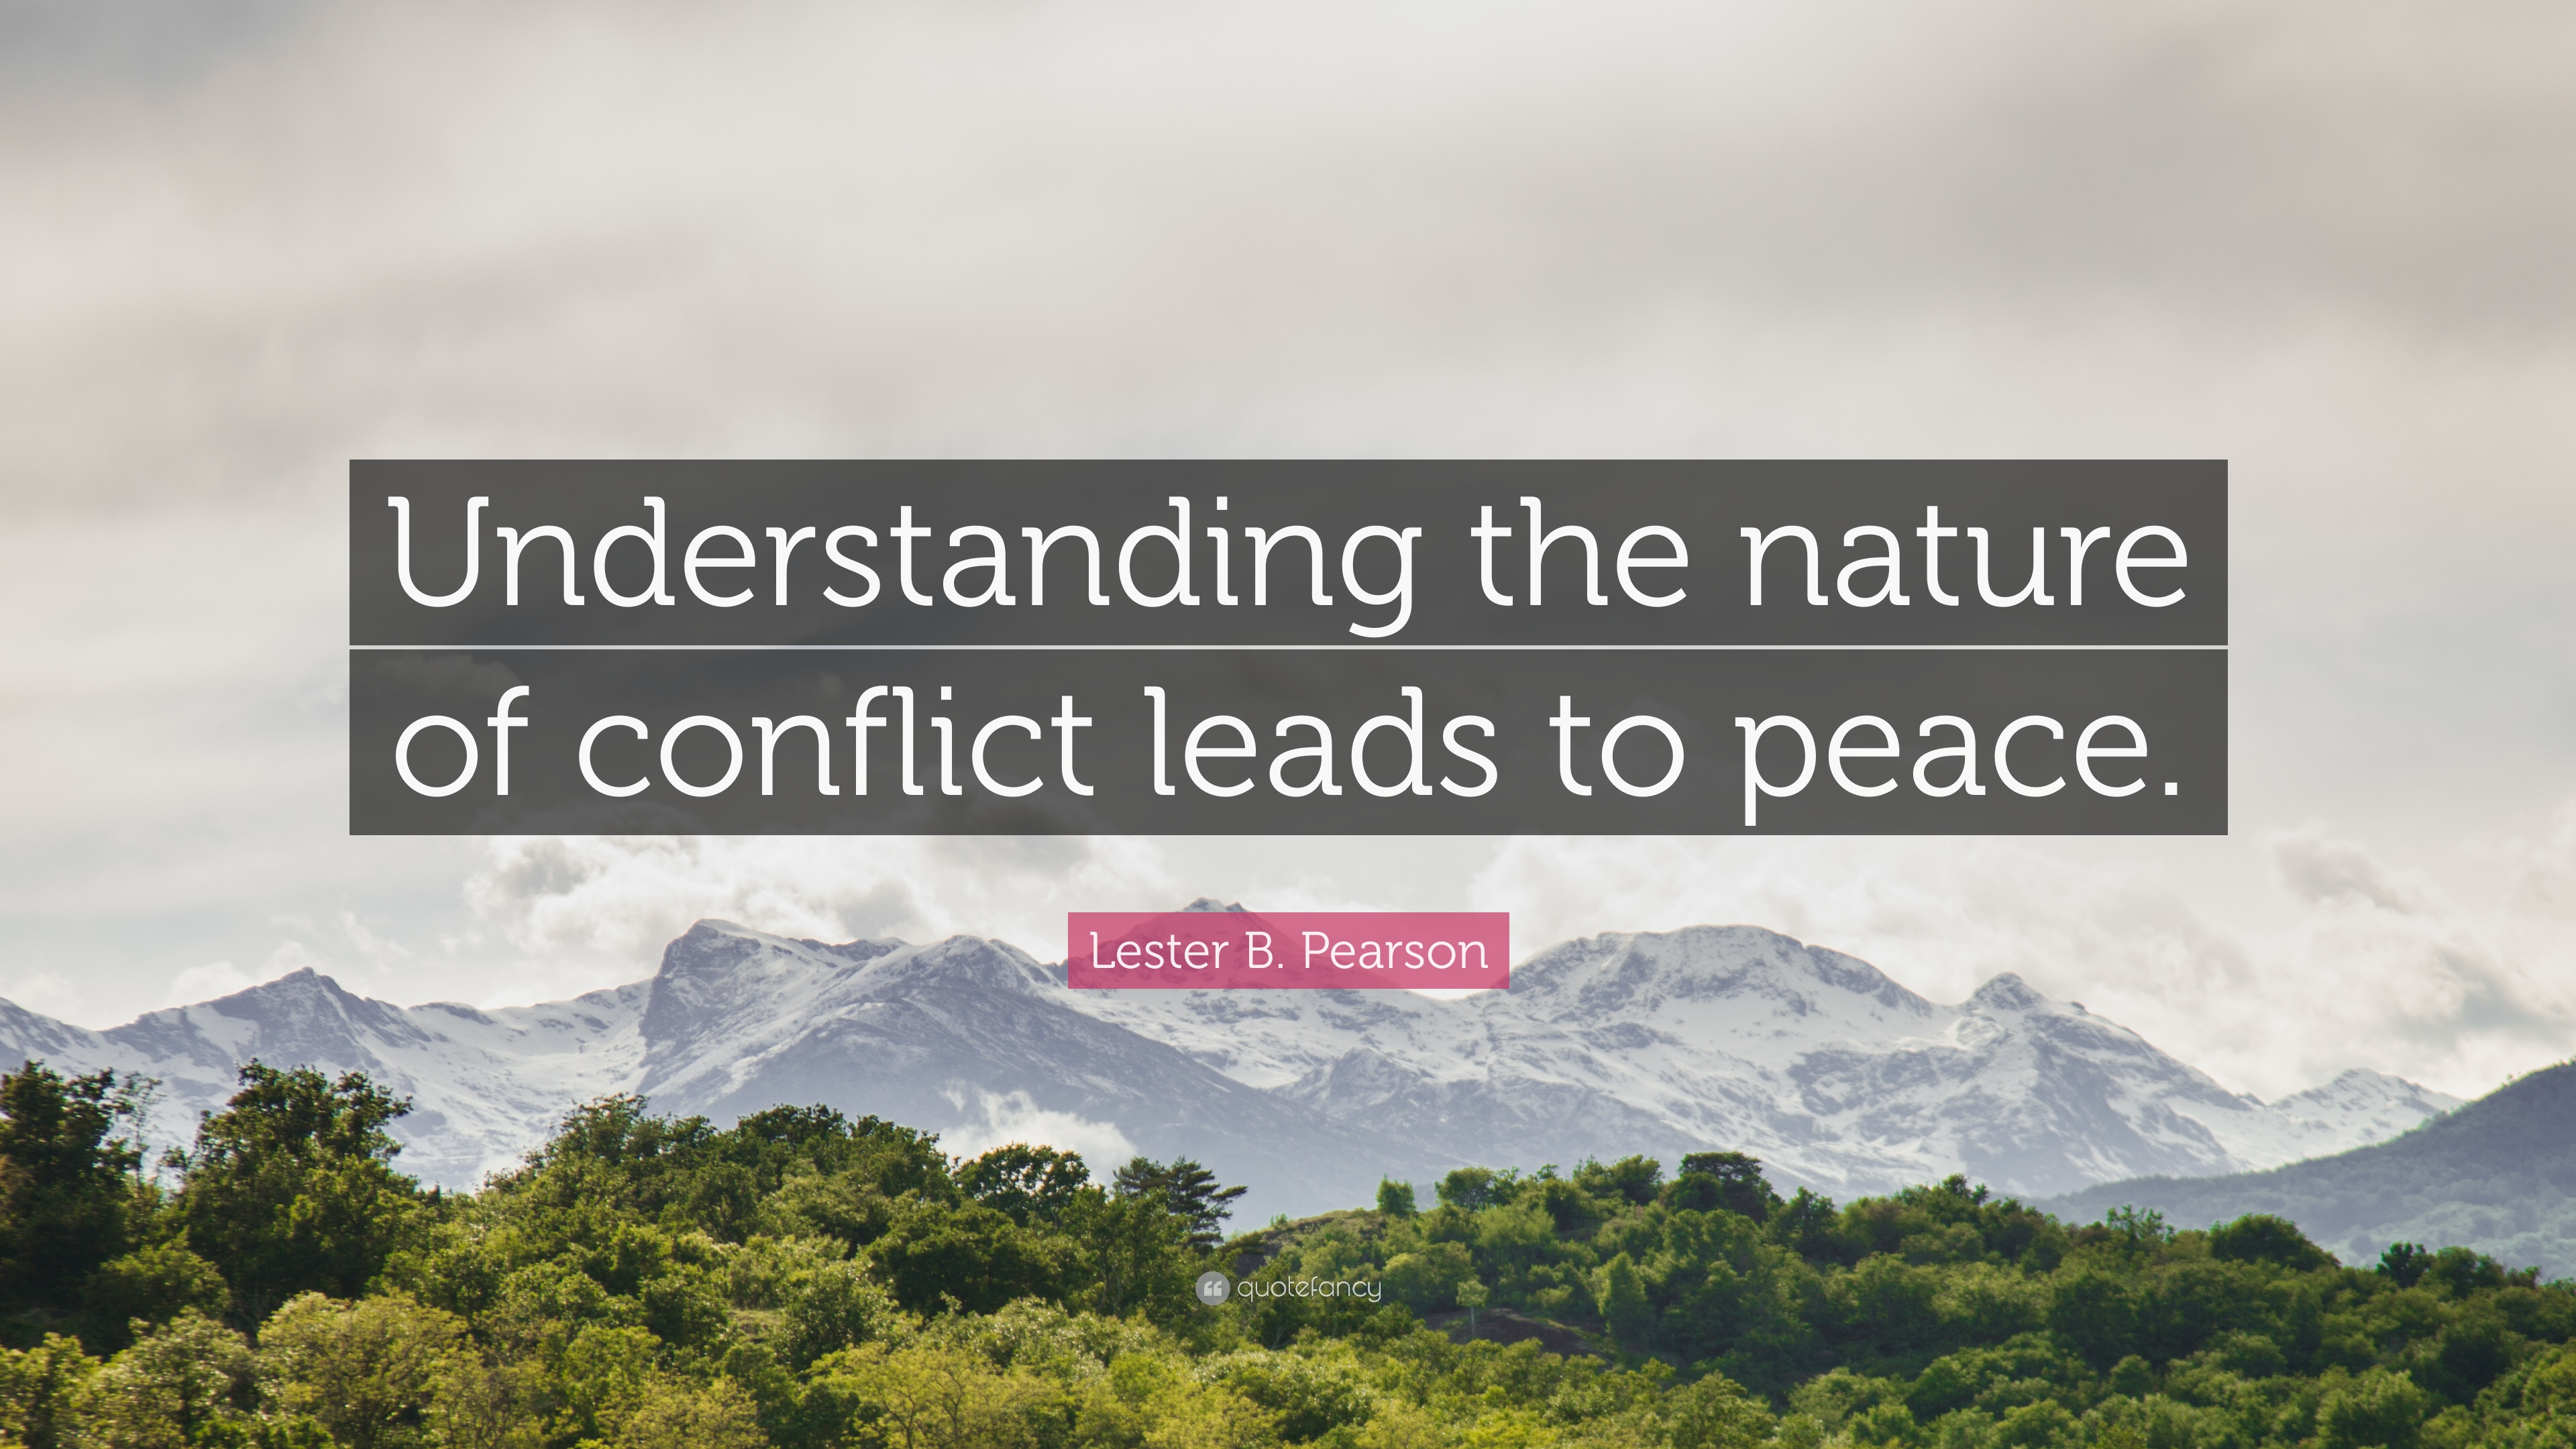 Lester B Pearson Quote Understanding The Nature Of Conflict Leads